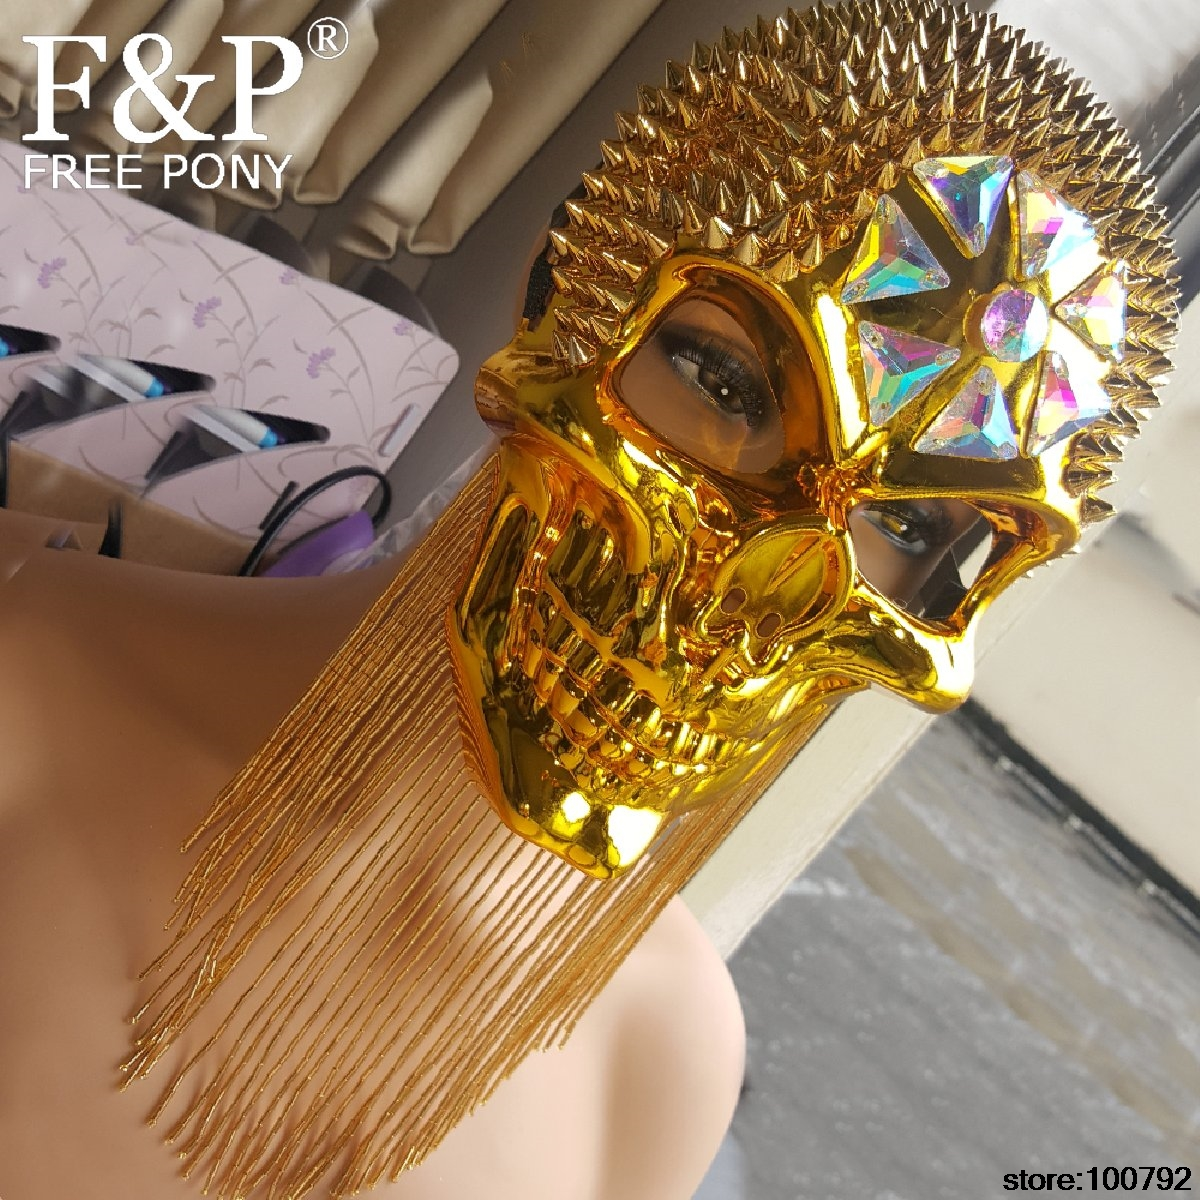 Holographic Burning Man Gold Skull Spike Face Mask Steampunk Costume Summer Musical Festival Rave Clothes Outfits Gear